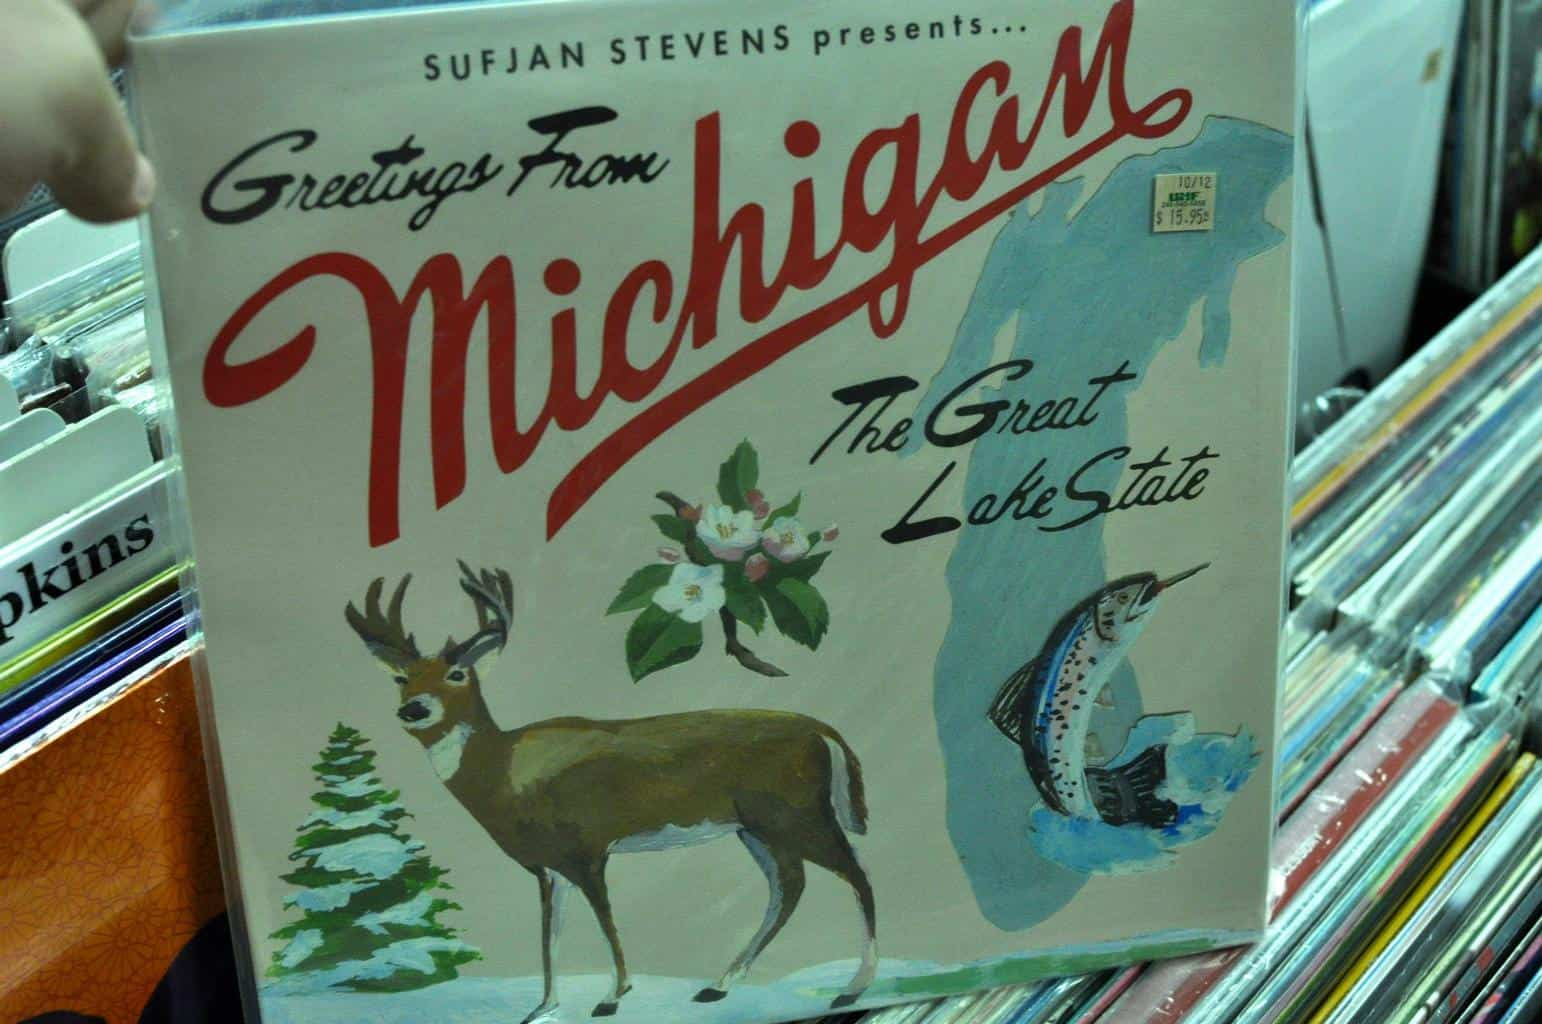 Greetings from Michigan!